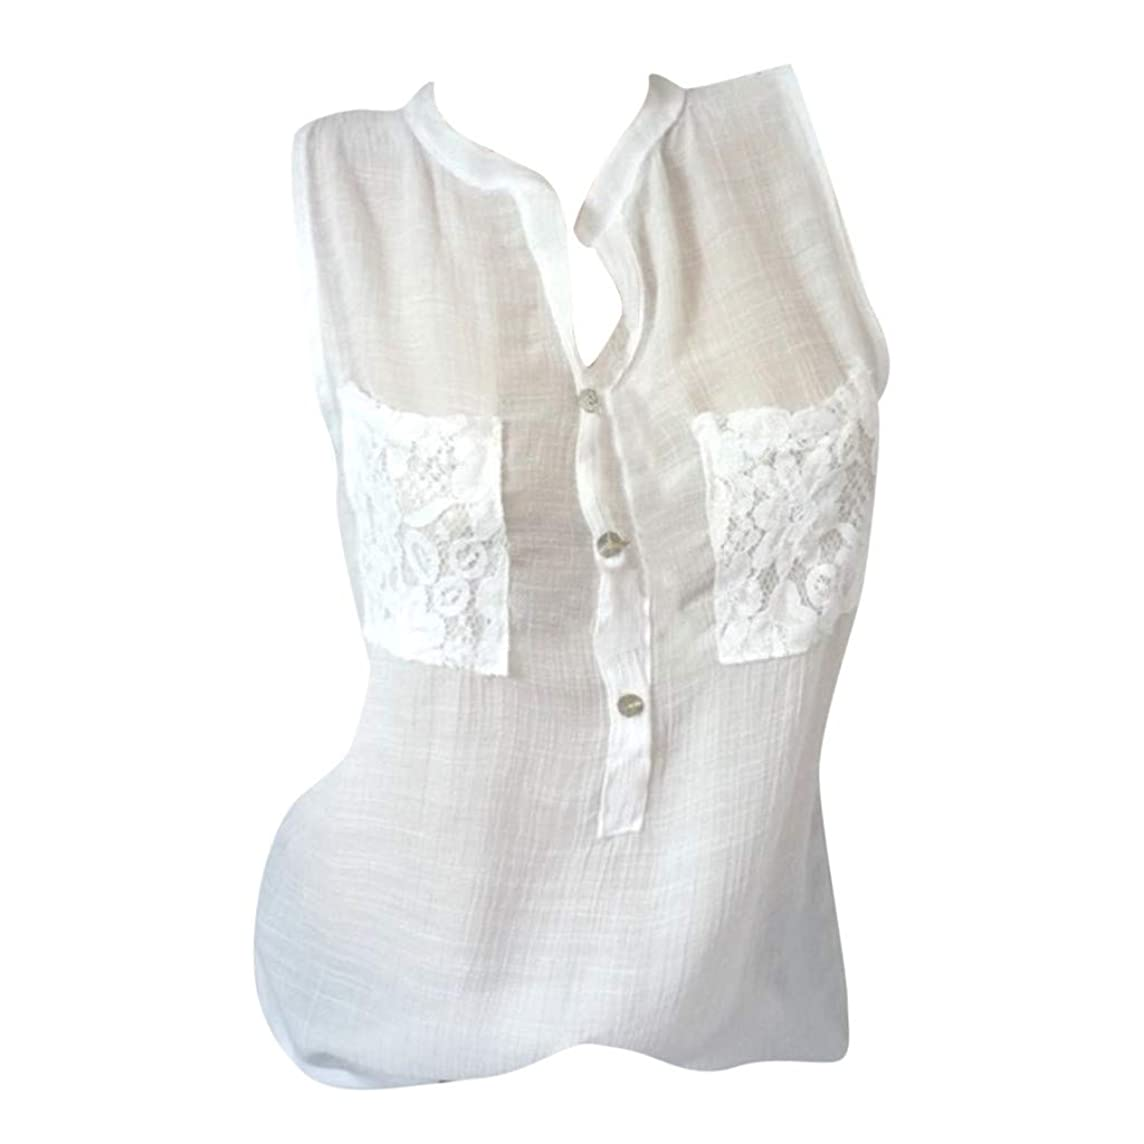 VEZAD Women Shirt Casual Sleeveless Print Tops Solid Fashion Loose Plue Size Blouse